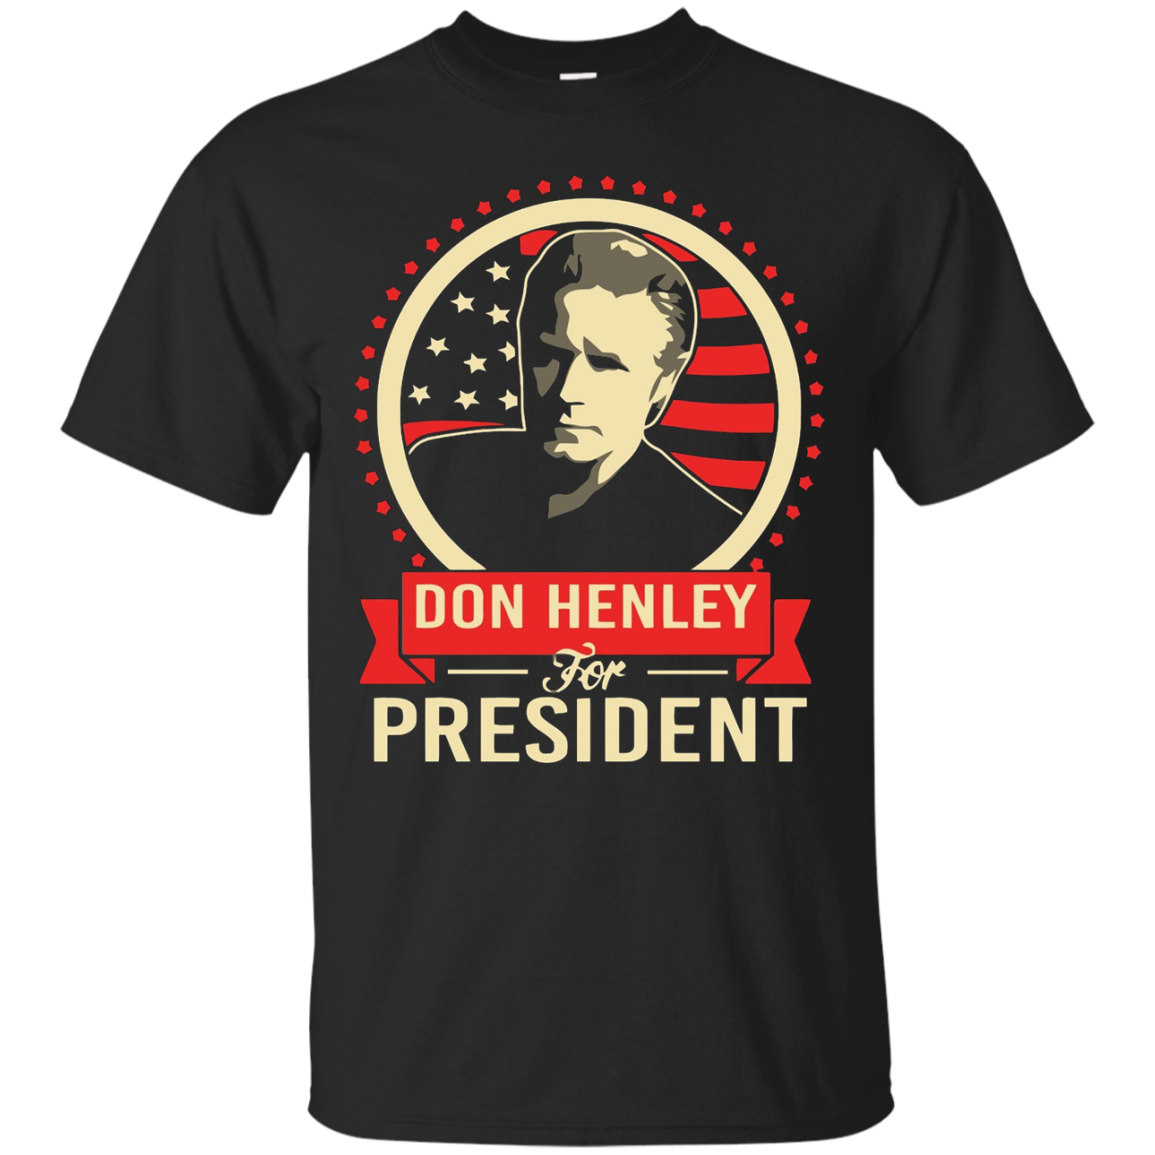 DON HENLEY FOR PRESIDENT T-SHIRT